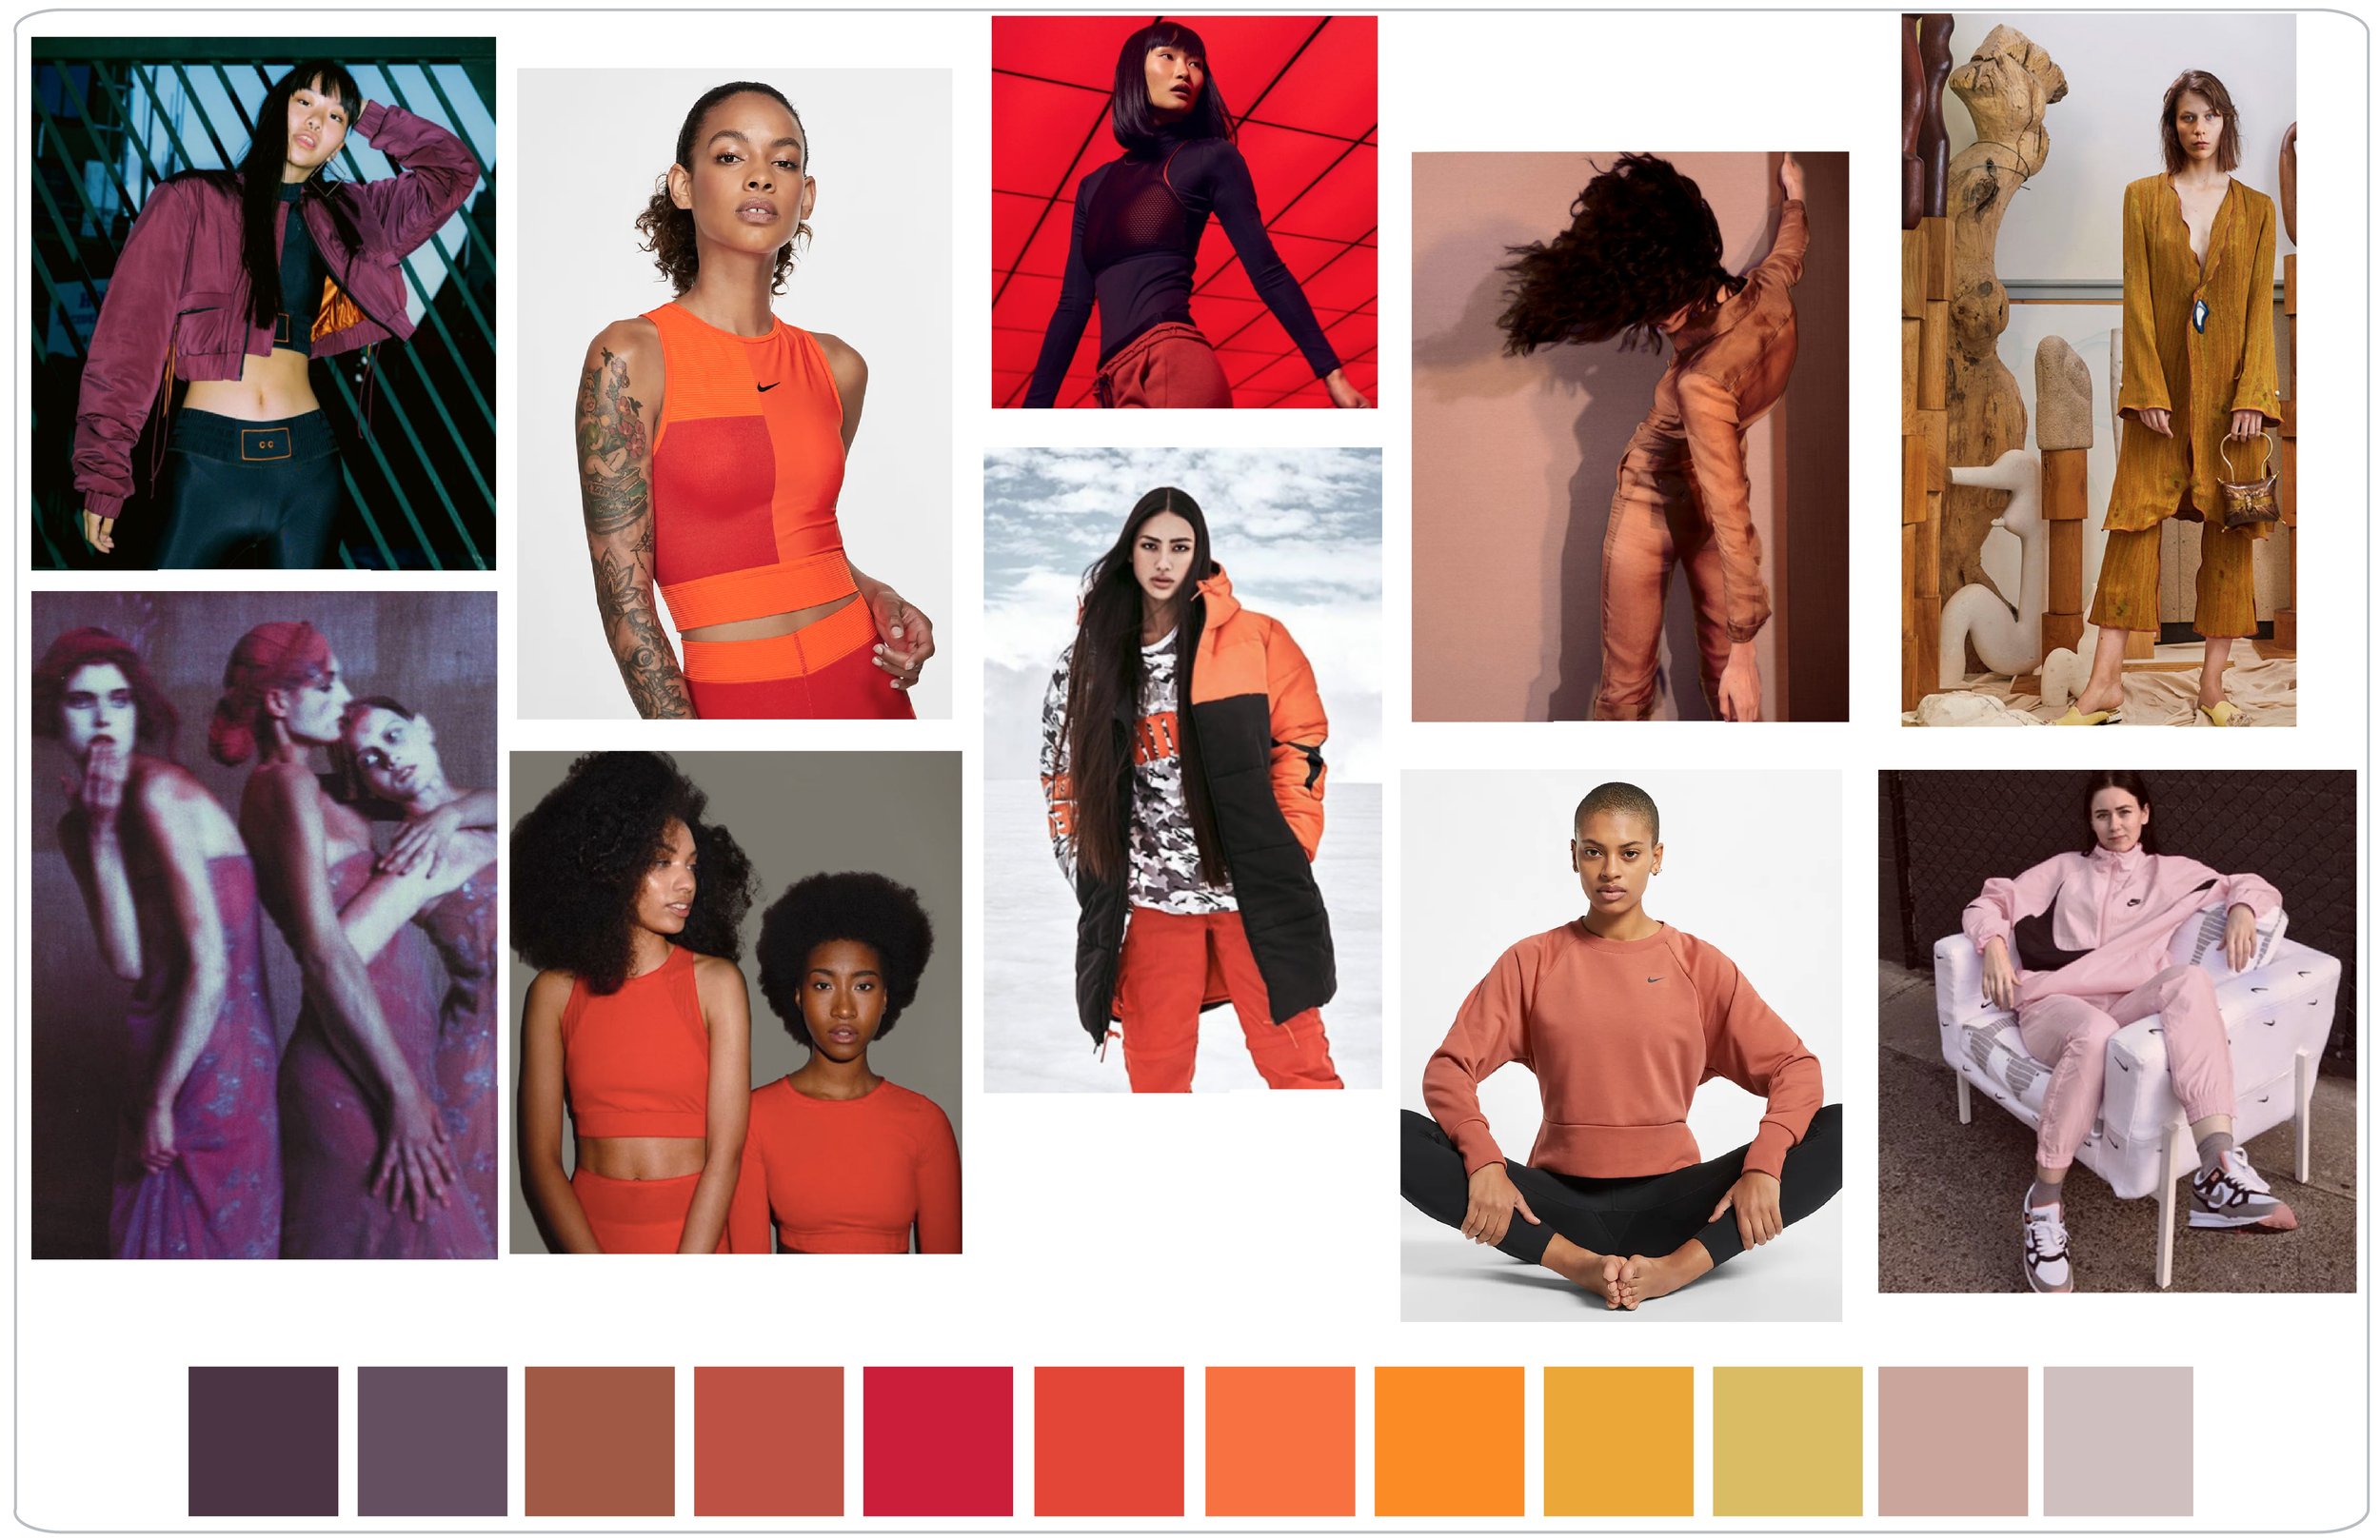 fall2020_color reasearch-02.png